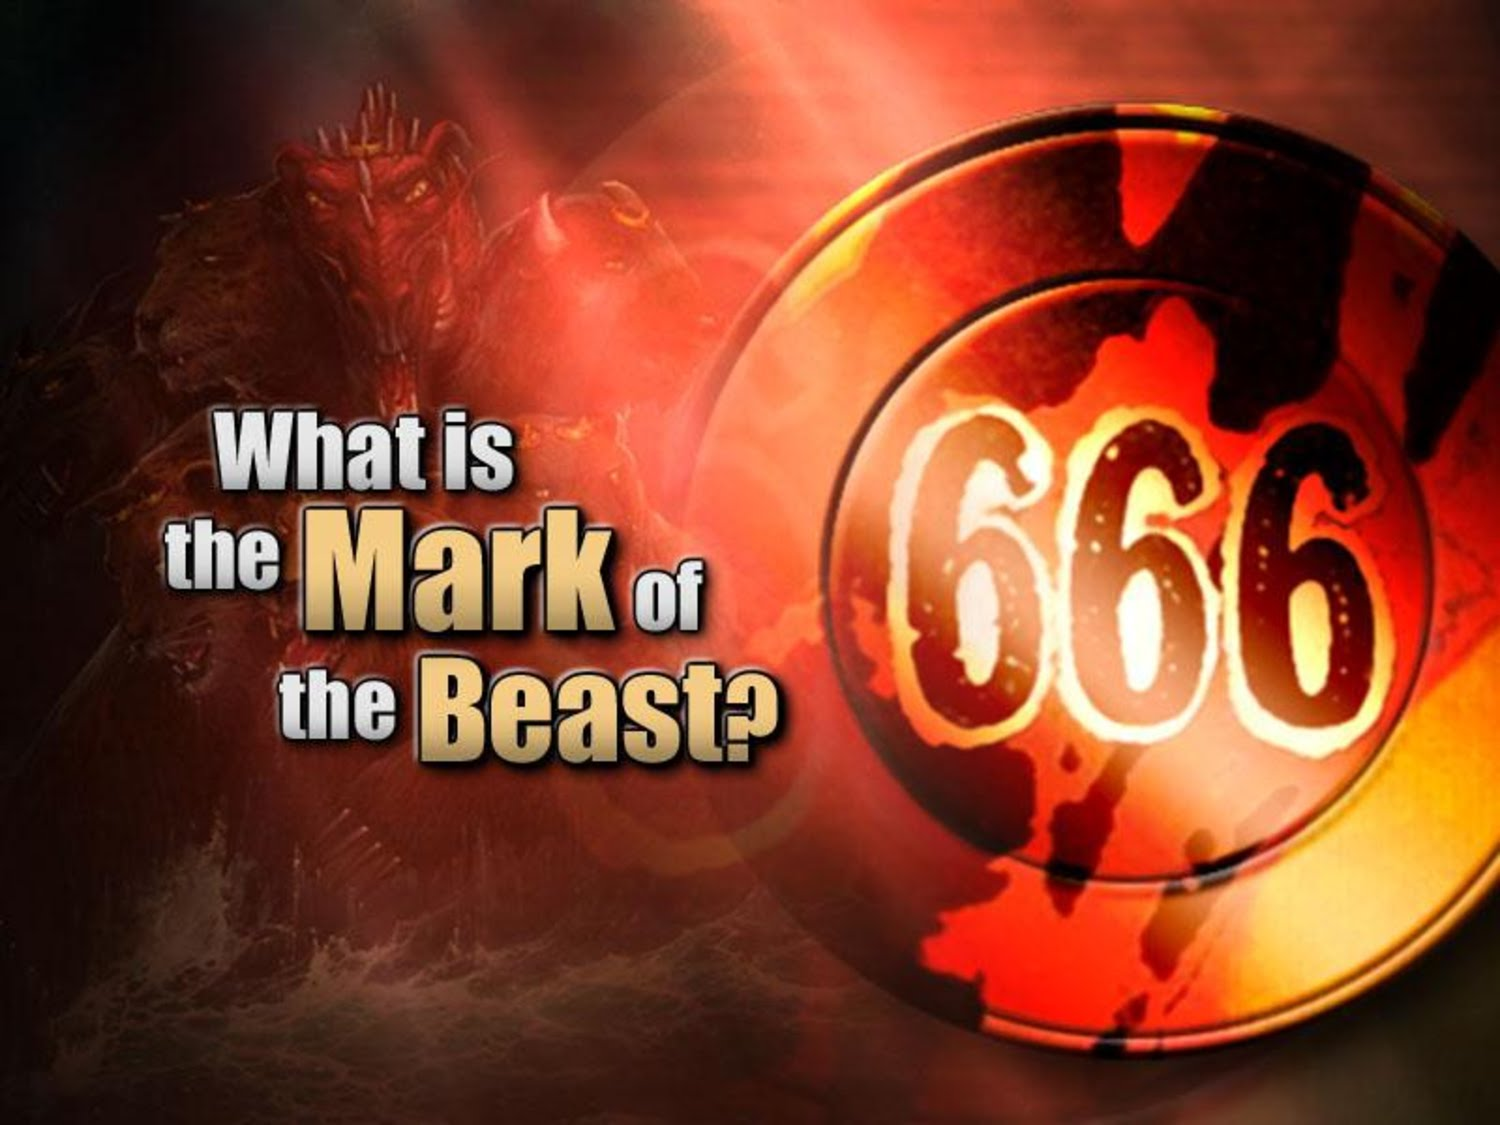 Angel M. Rodriguez AND 666 - JESUIT INFILTRATION IN ADVENTIST CHURCH